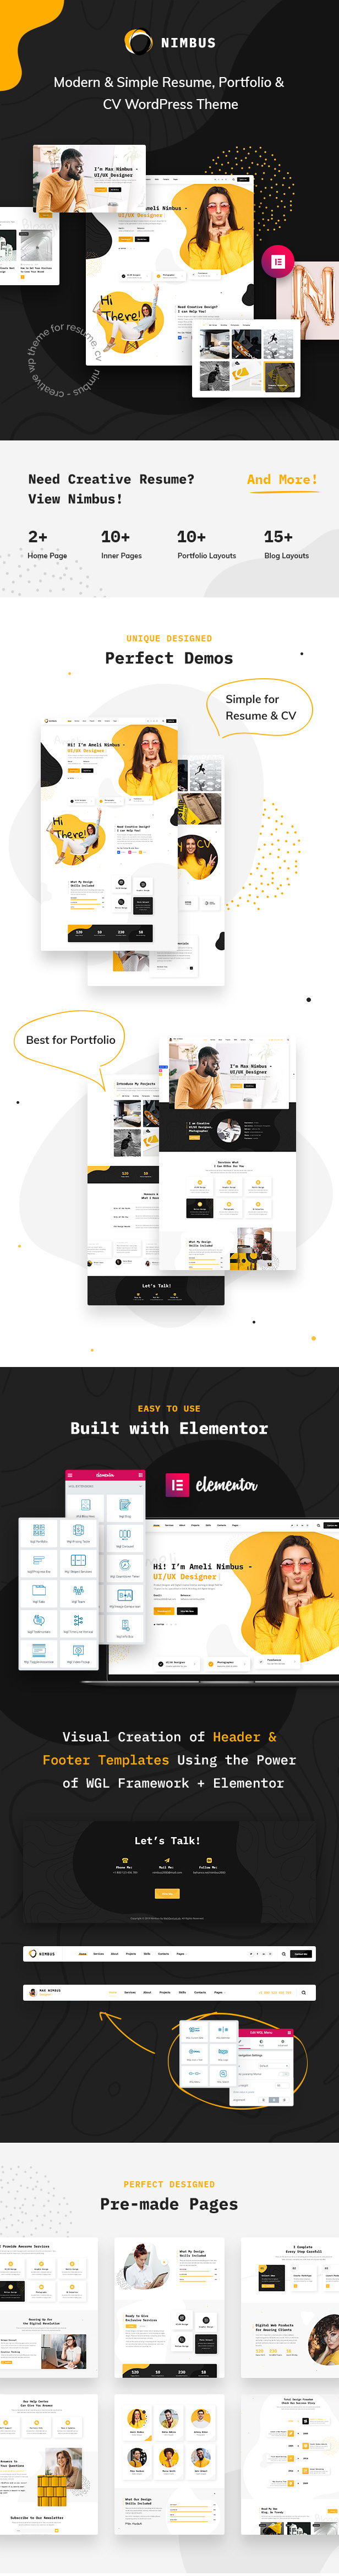 Nimbus - CV & Portfolio WordPress Theme - 1